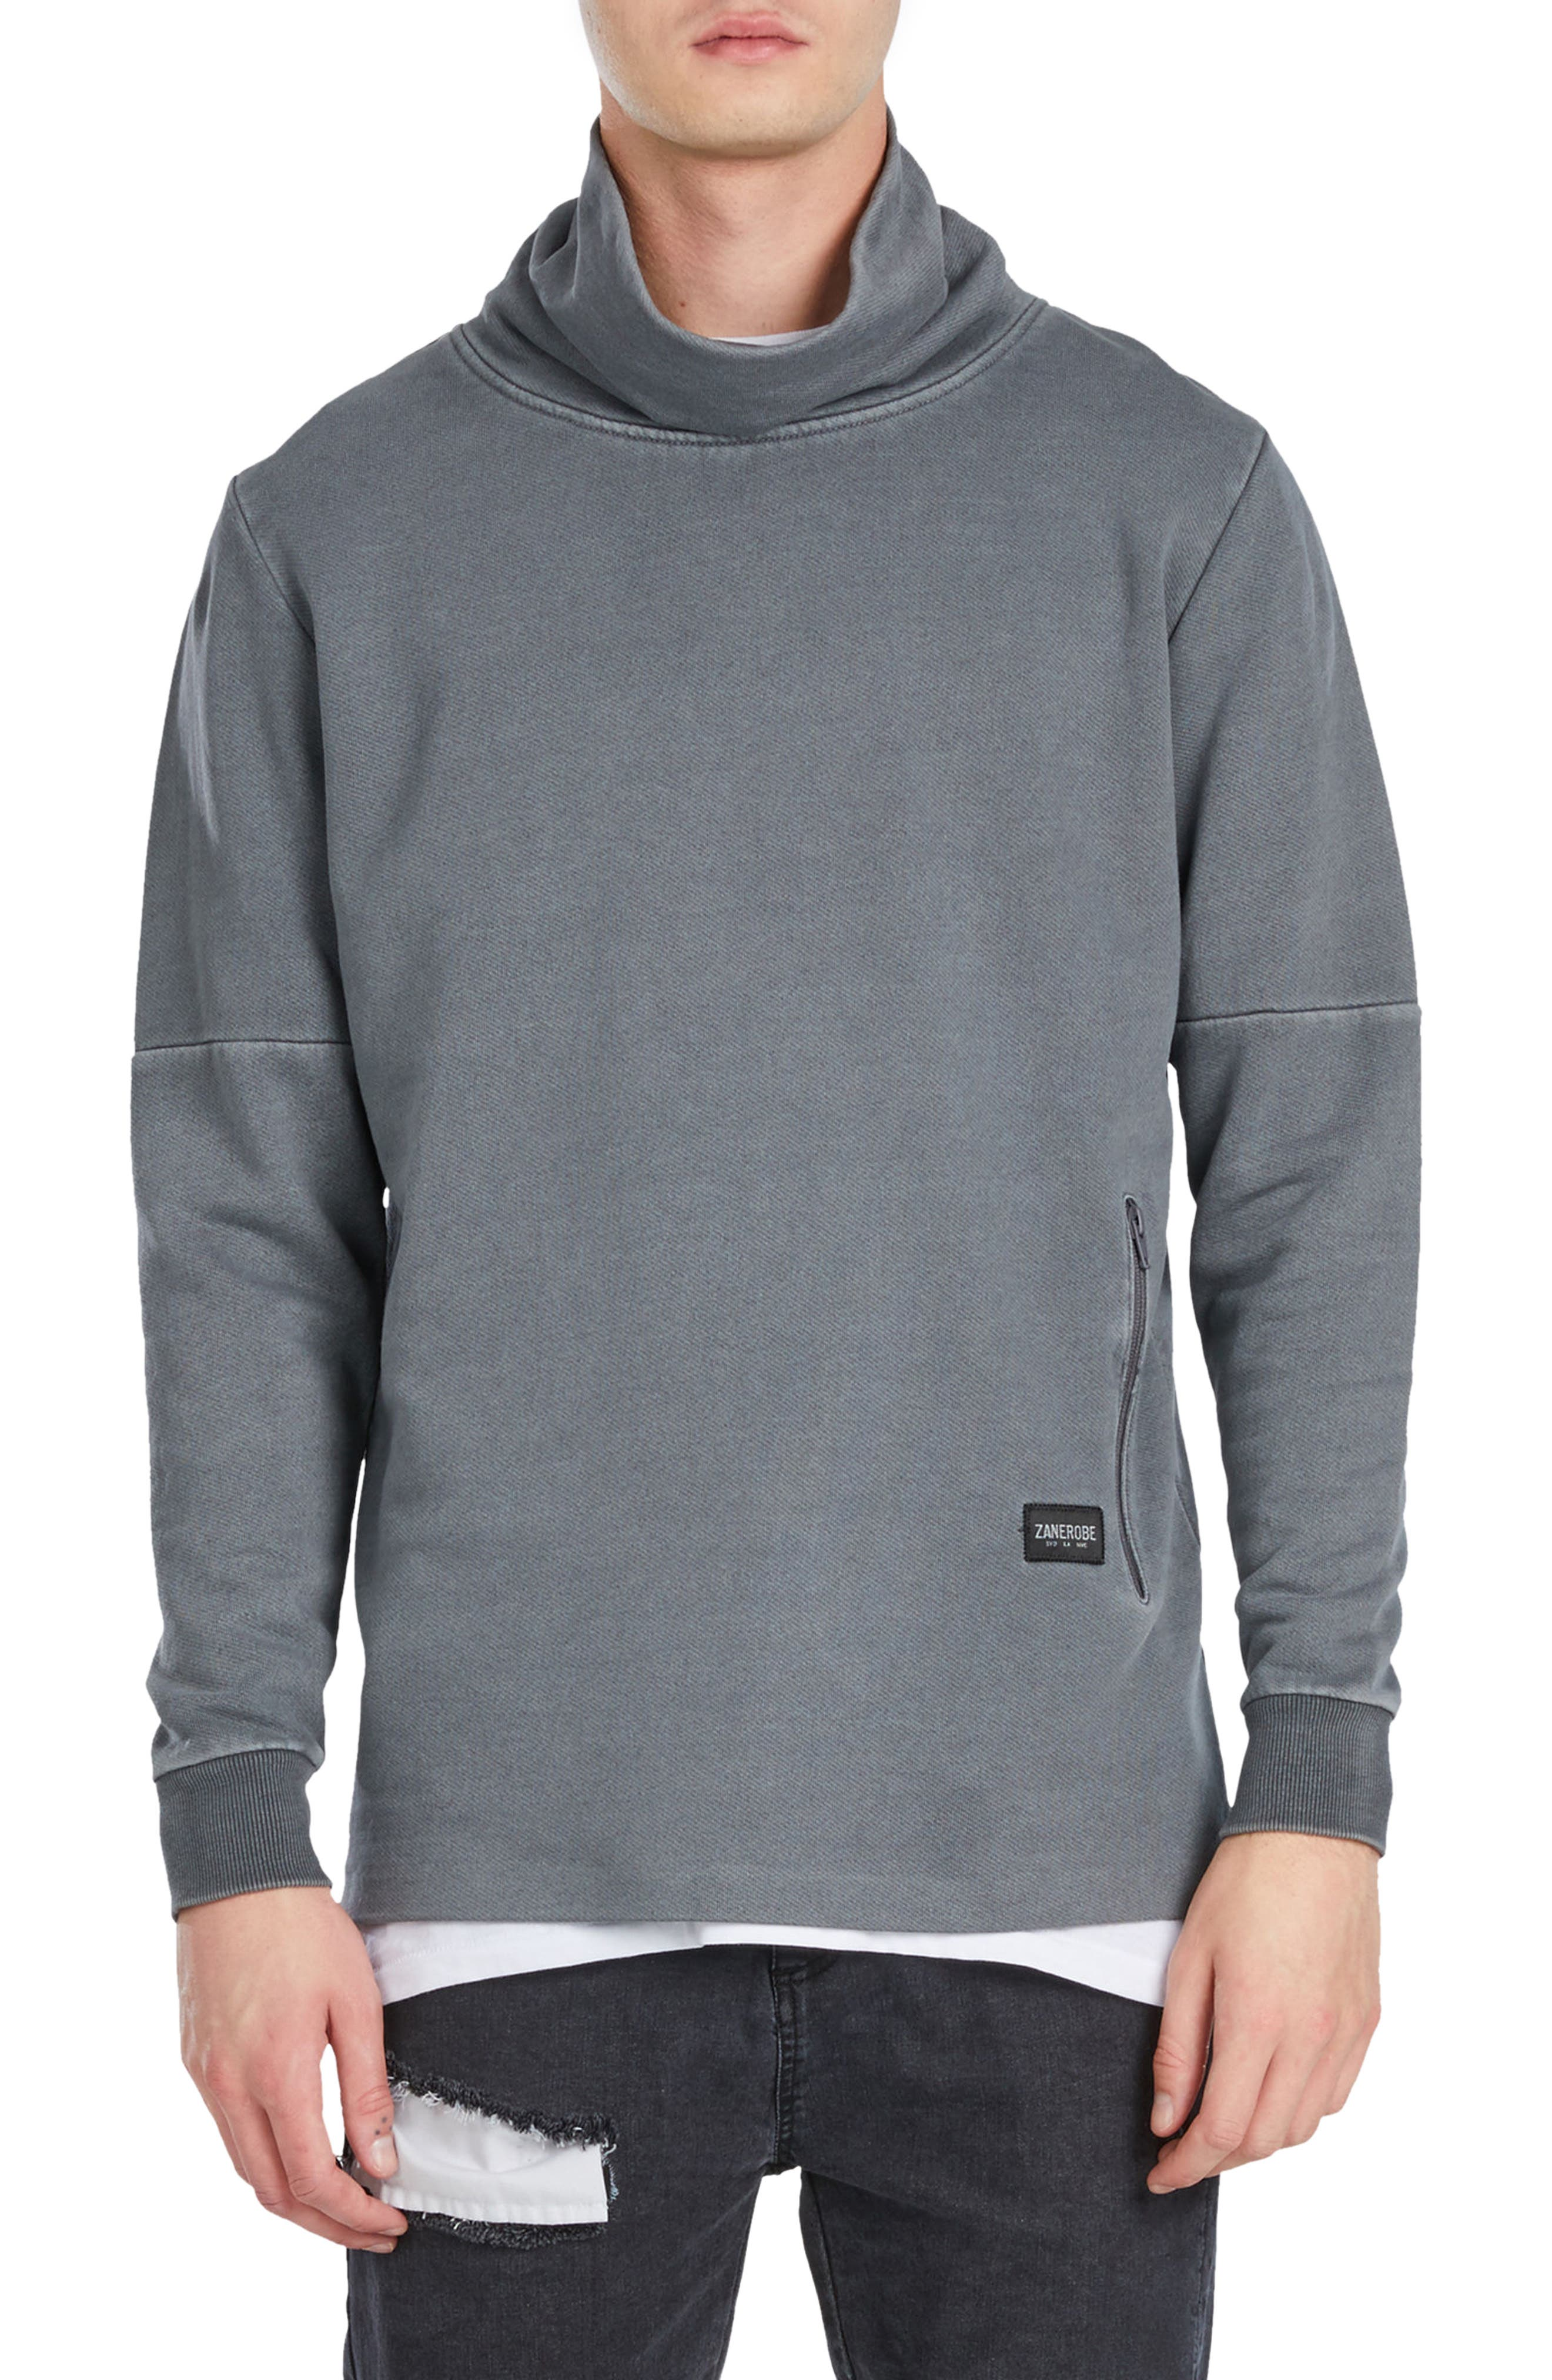 Mock Neck Sweatshirt,                         Main,                         color, Grey